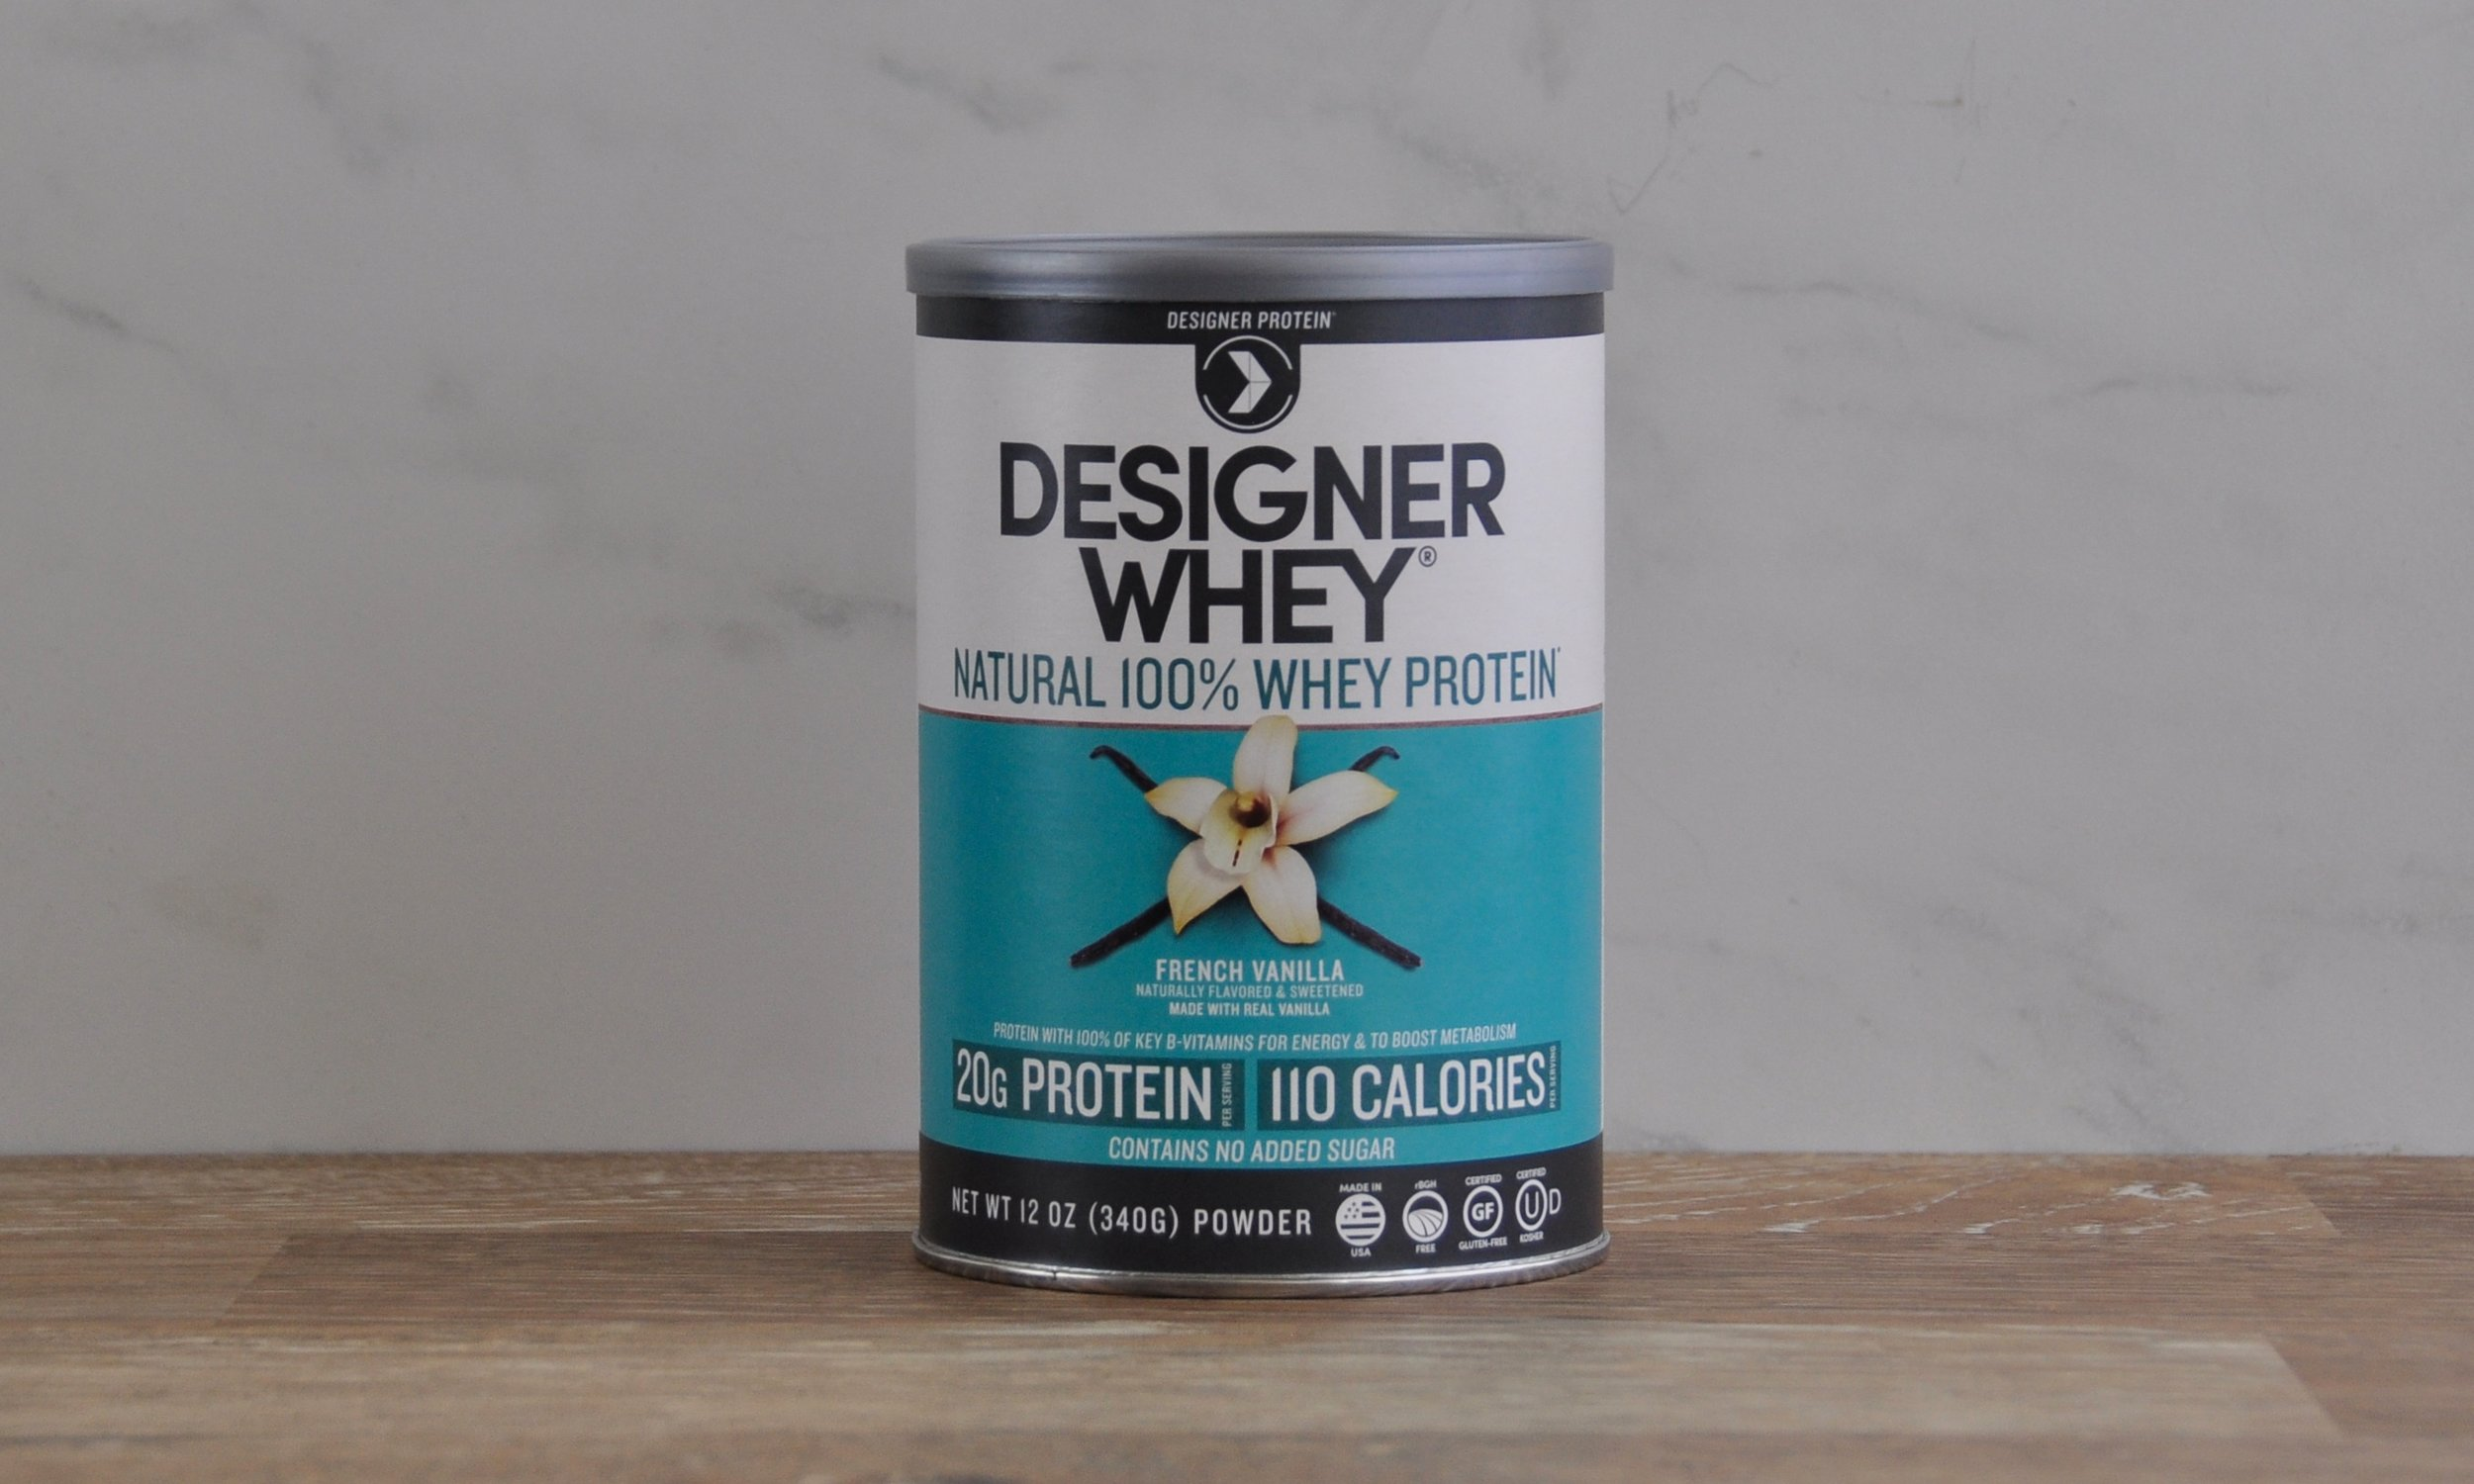 One of our most popular SKUs, Designer Whey French Vanilla, 12oz - collaborated on front panel design, in charge of designing back and nutritional panel layouts.